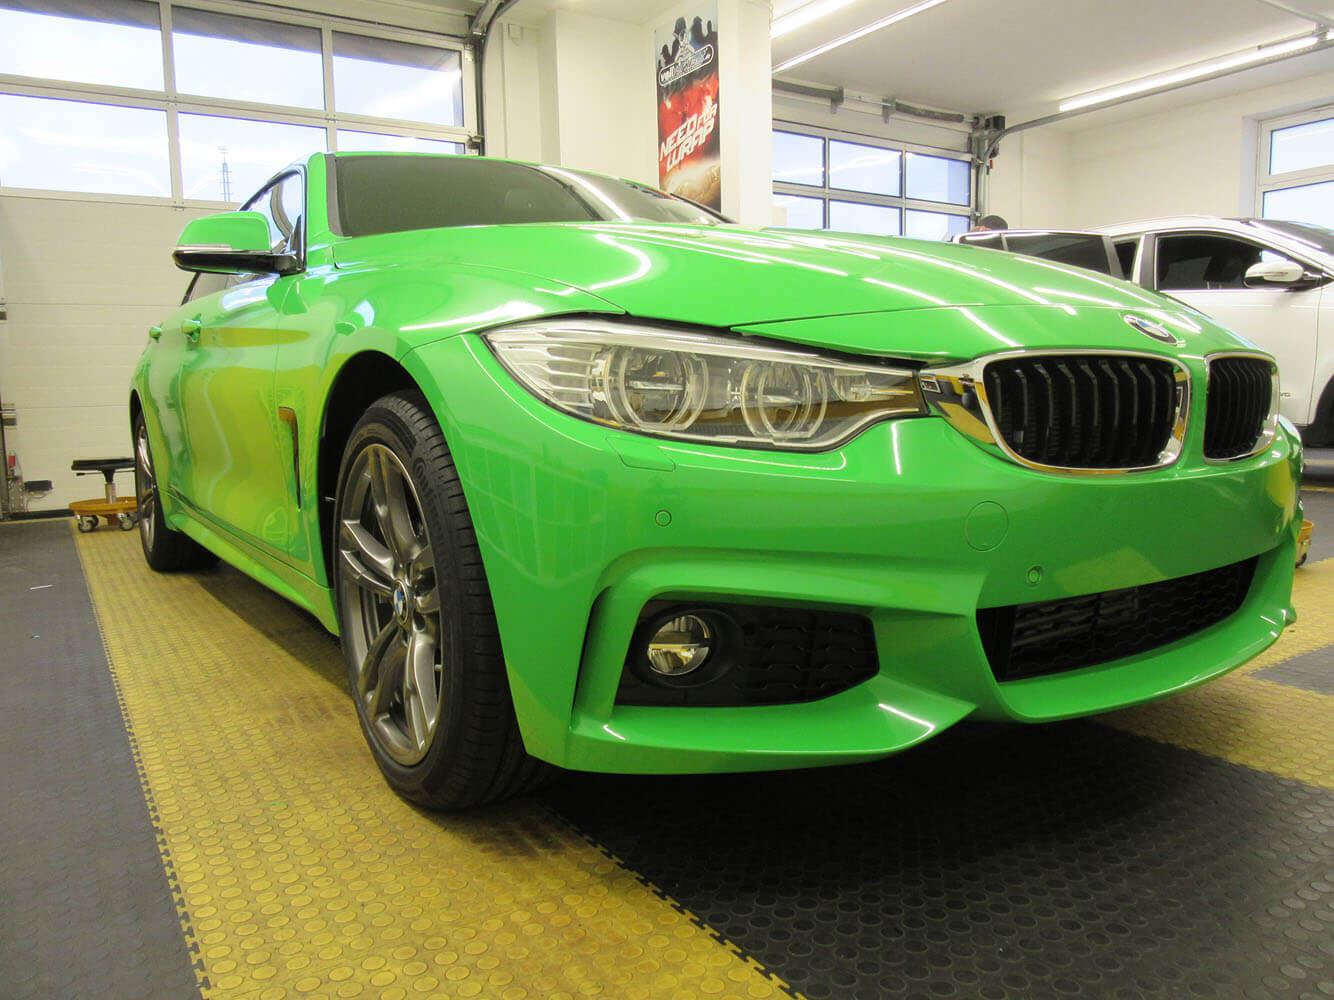 BMW Grans Tourismo in grasgreen gloss